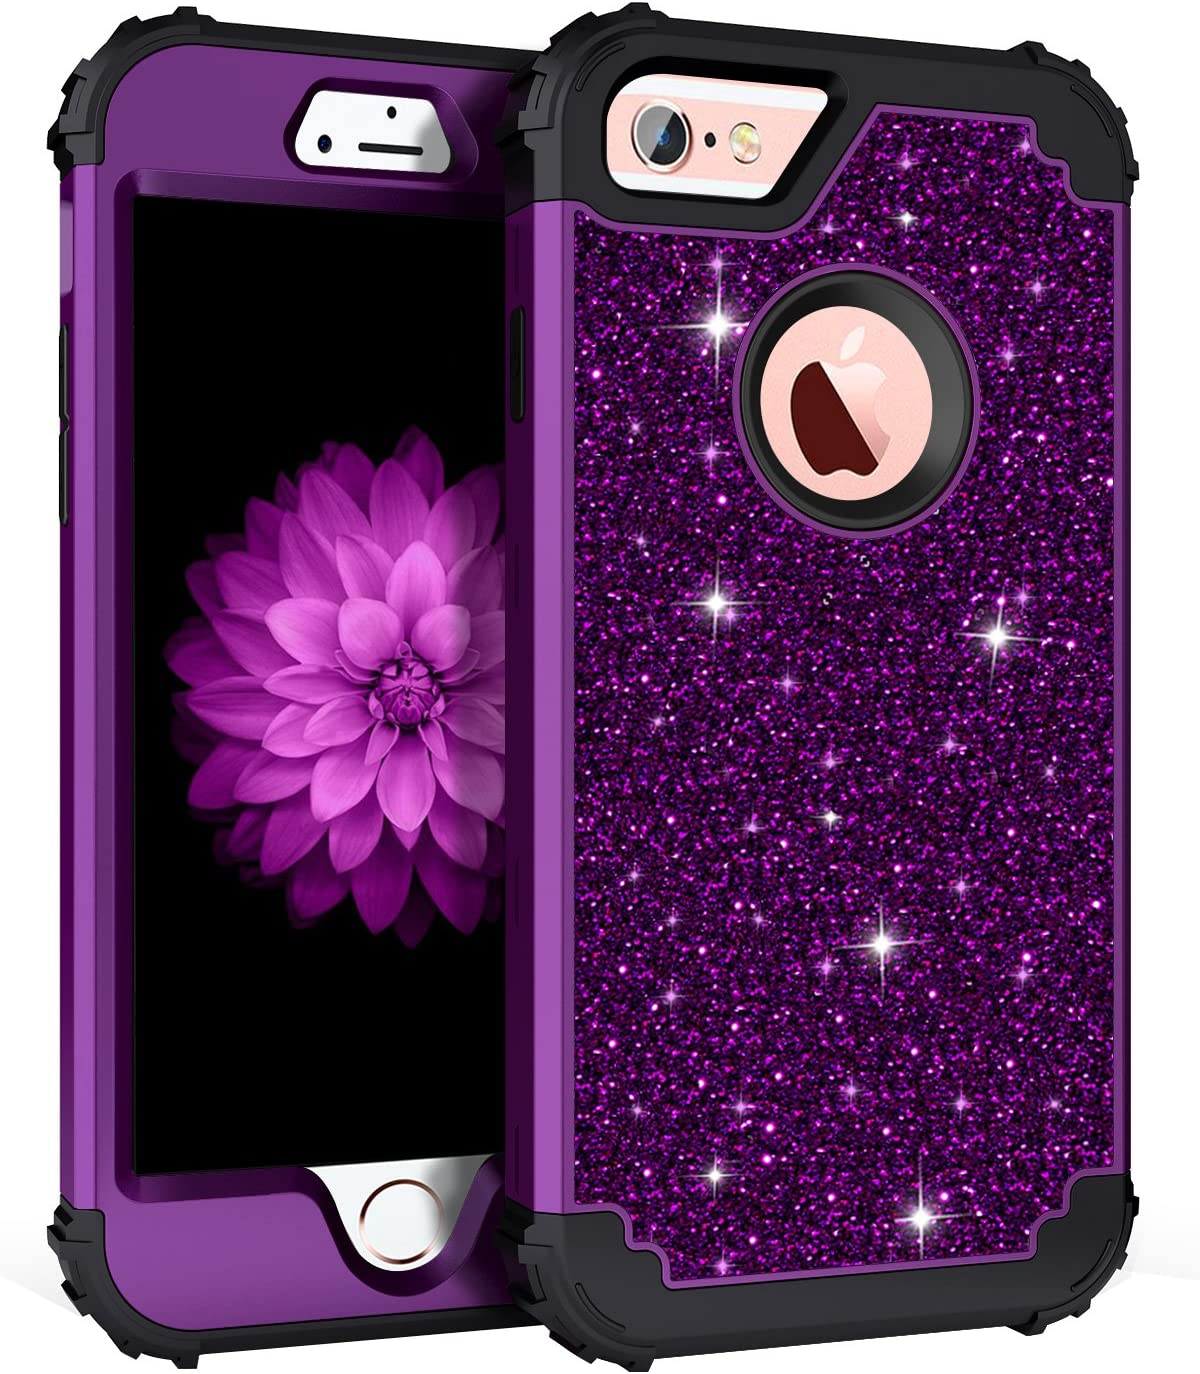 Pandawell Compatible iPhone 6s Plus Case iPhone 6 Plus Case, Glitter Sparkle Bling Heavy Duty Hybrid High Impact Shockproof Cover Case for iPhone 6s Plus/6 Plus, Shiny Purple/Black